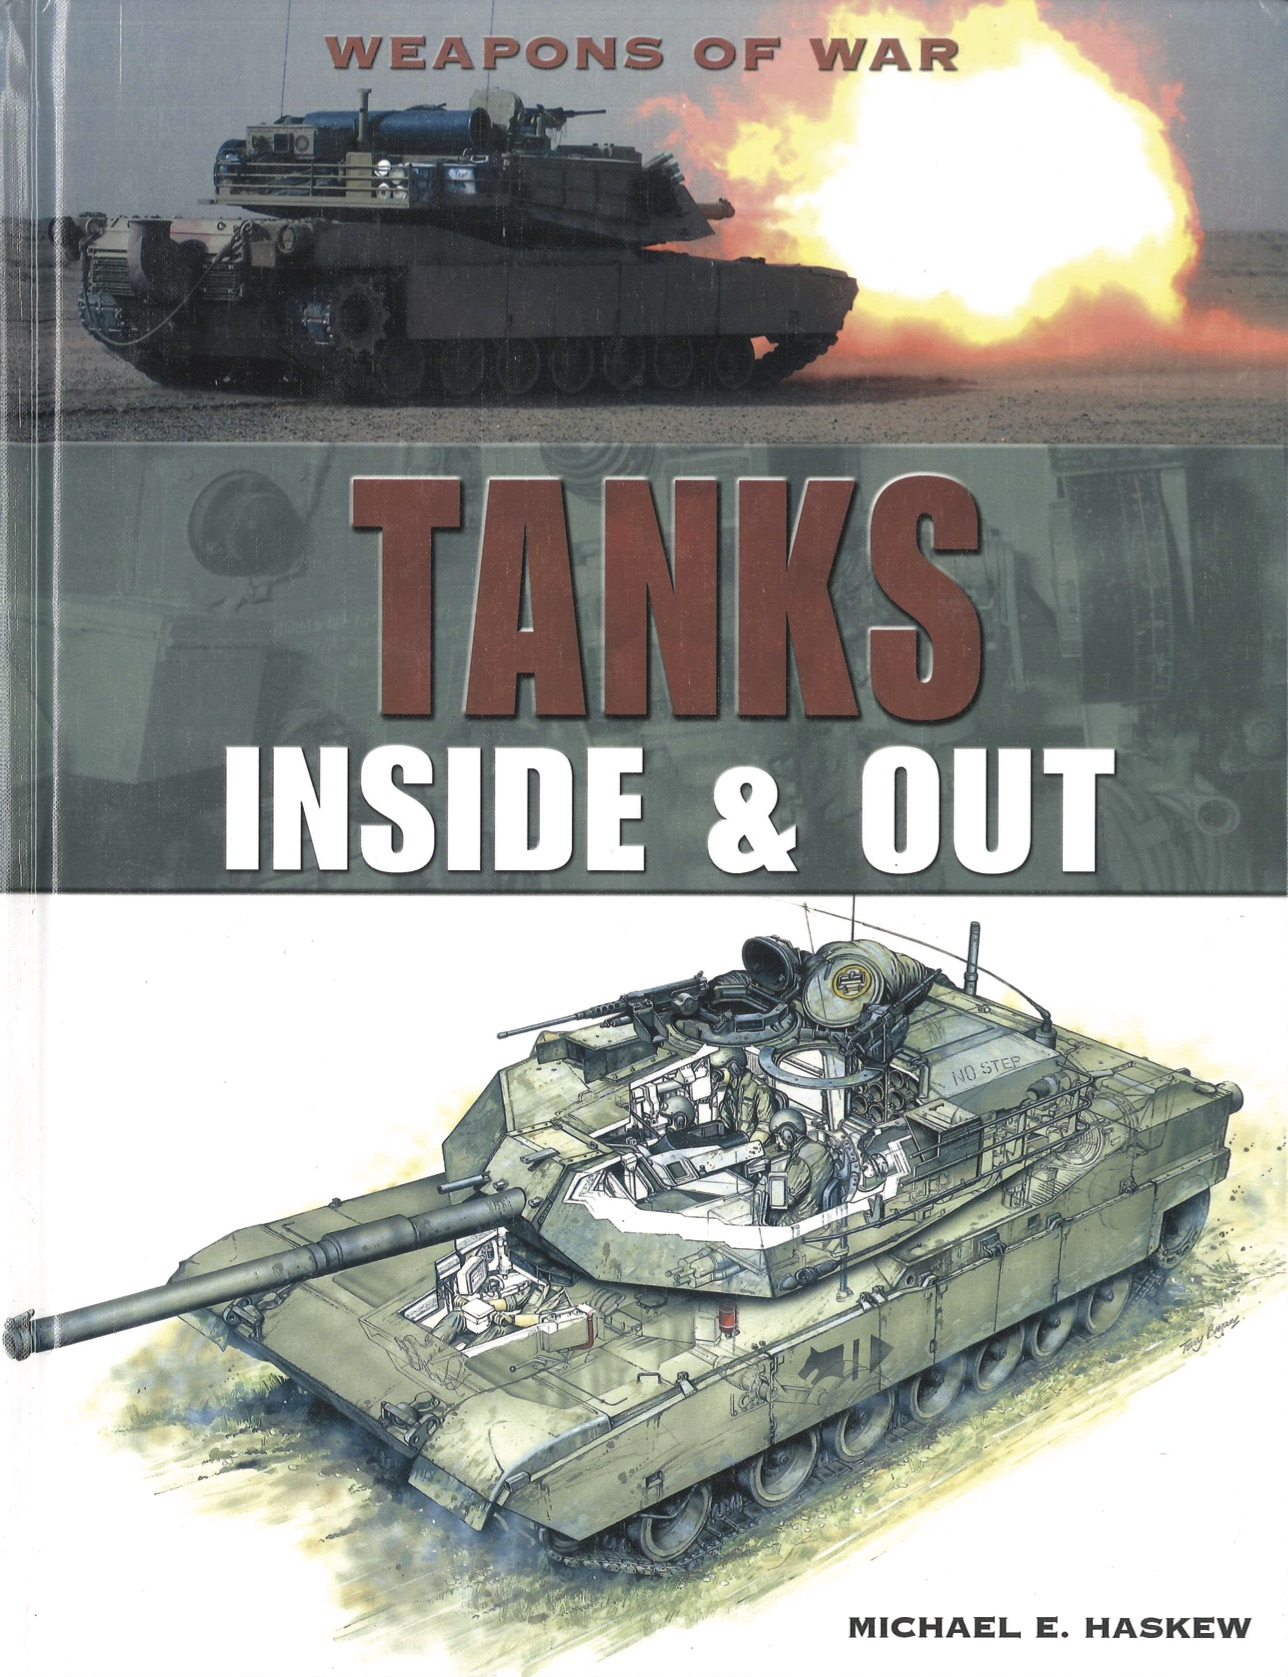 Inside & Out: Tanks